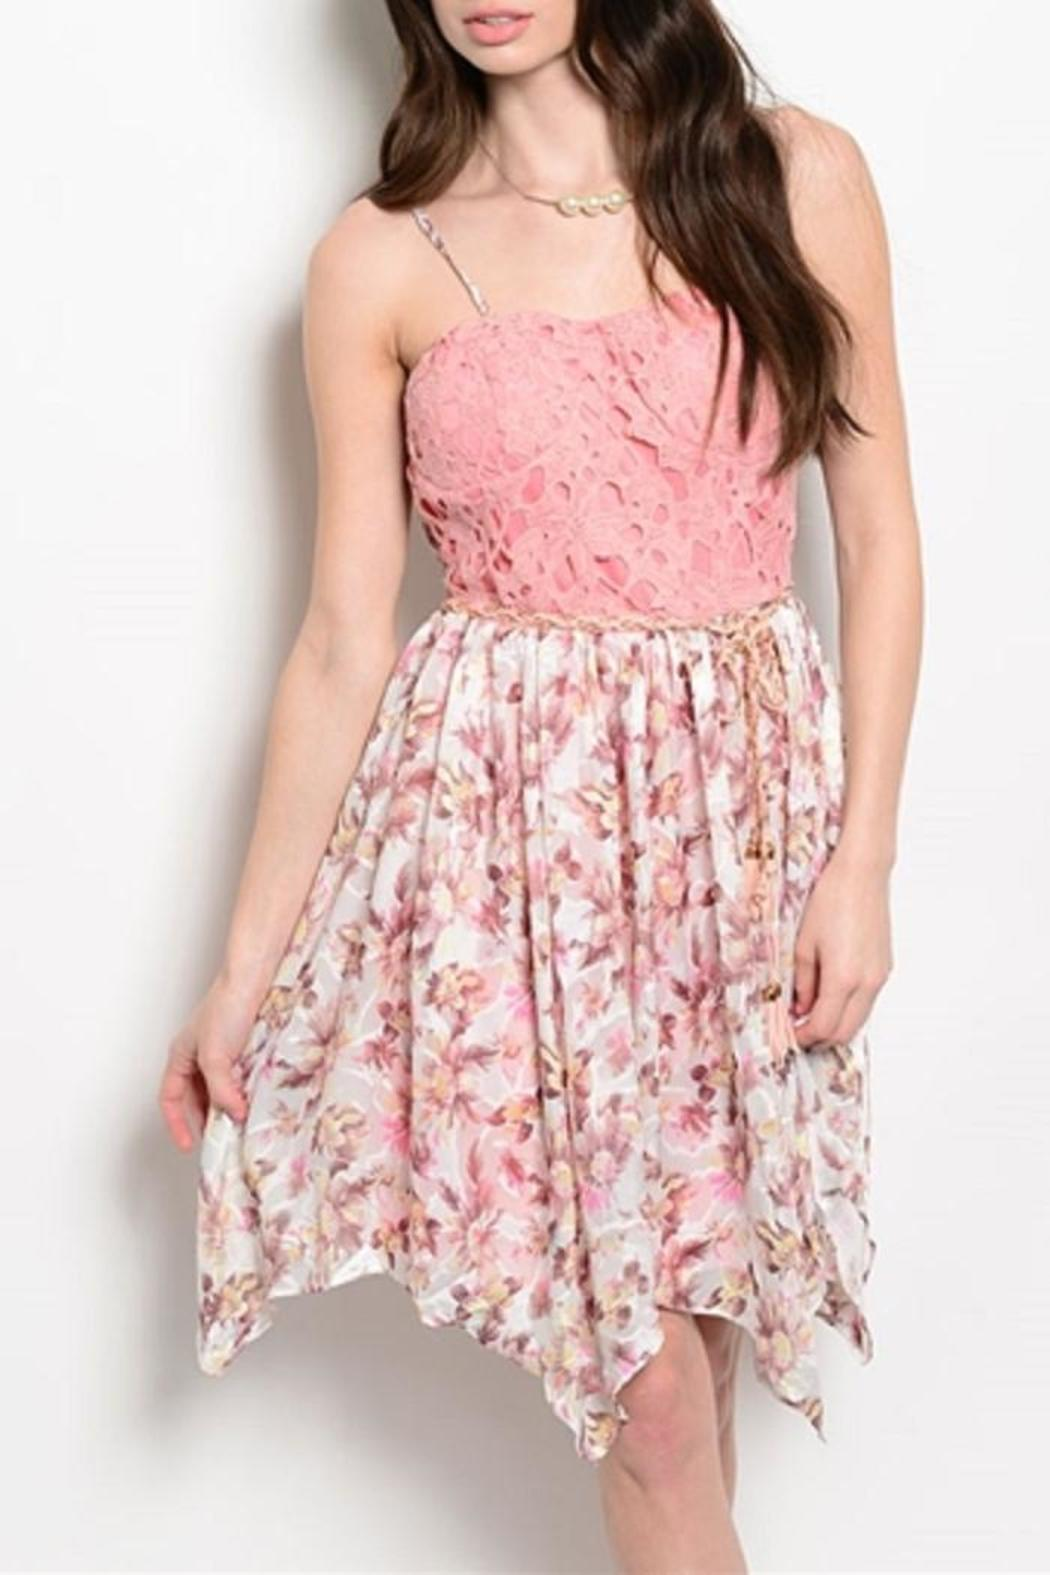 Adore clothing store